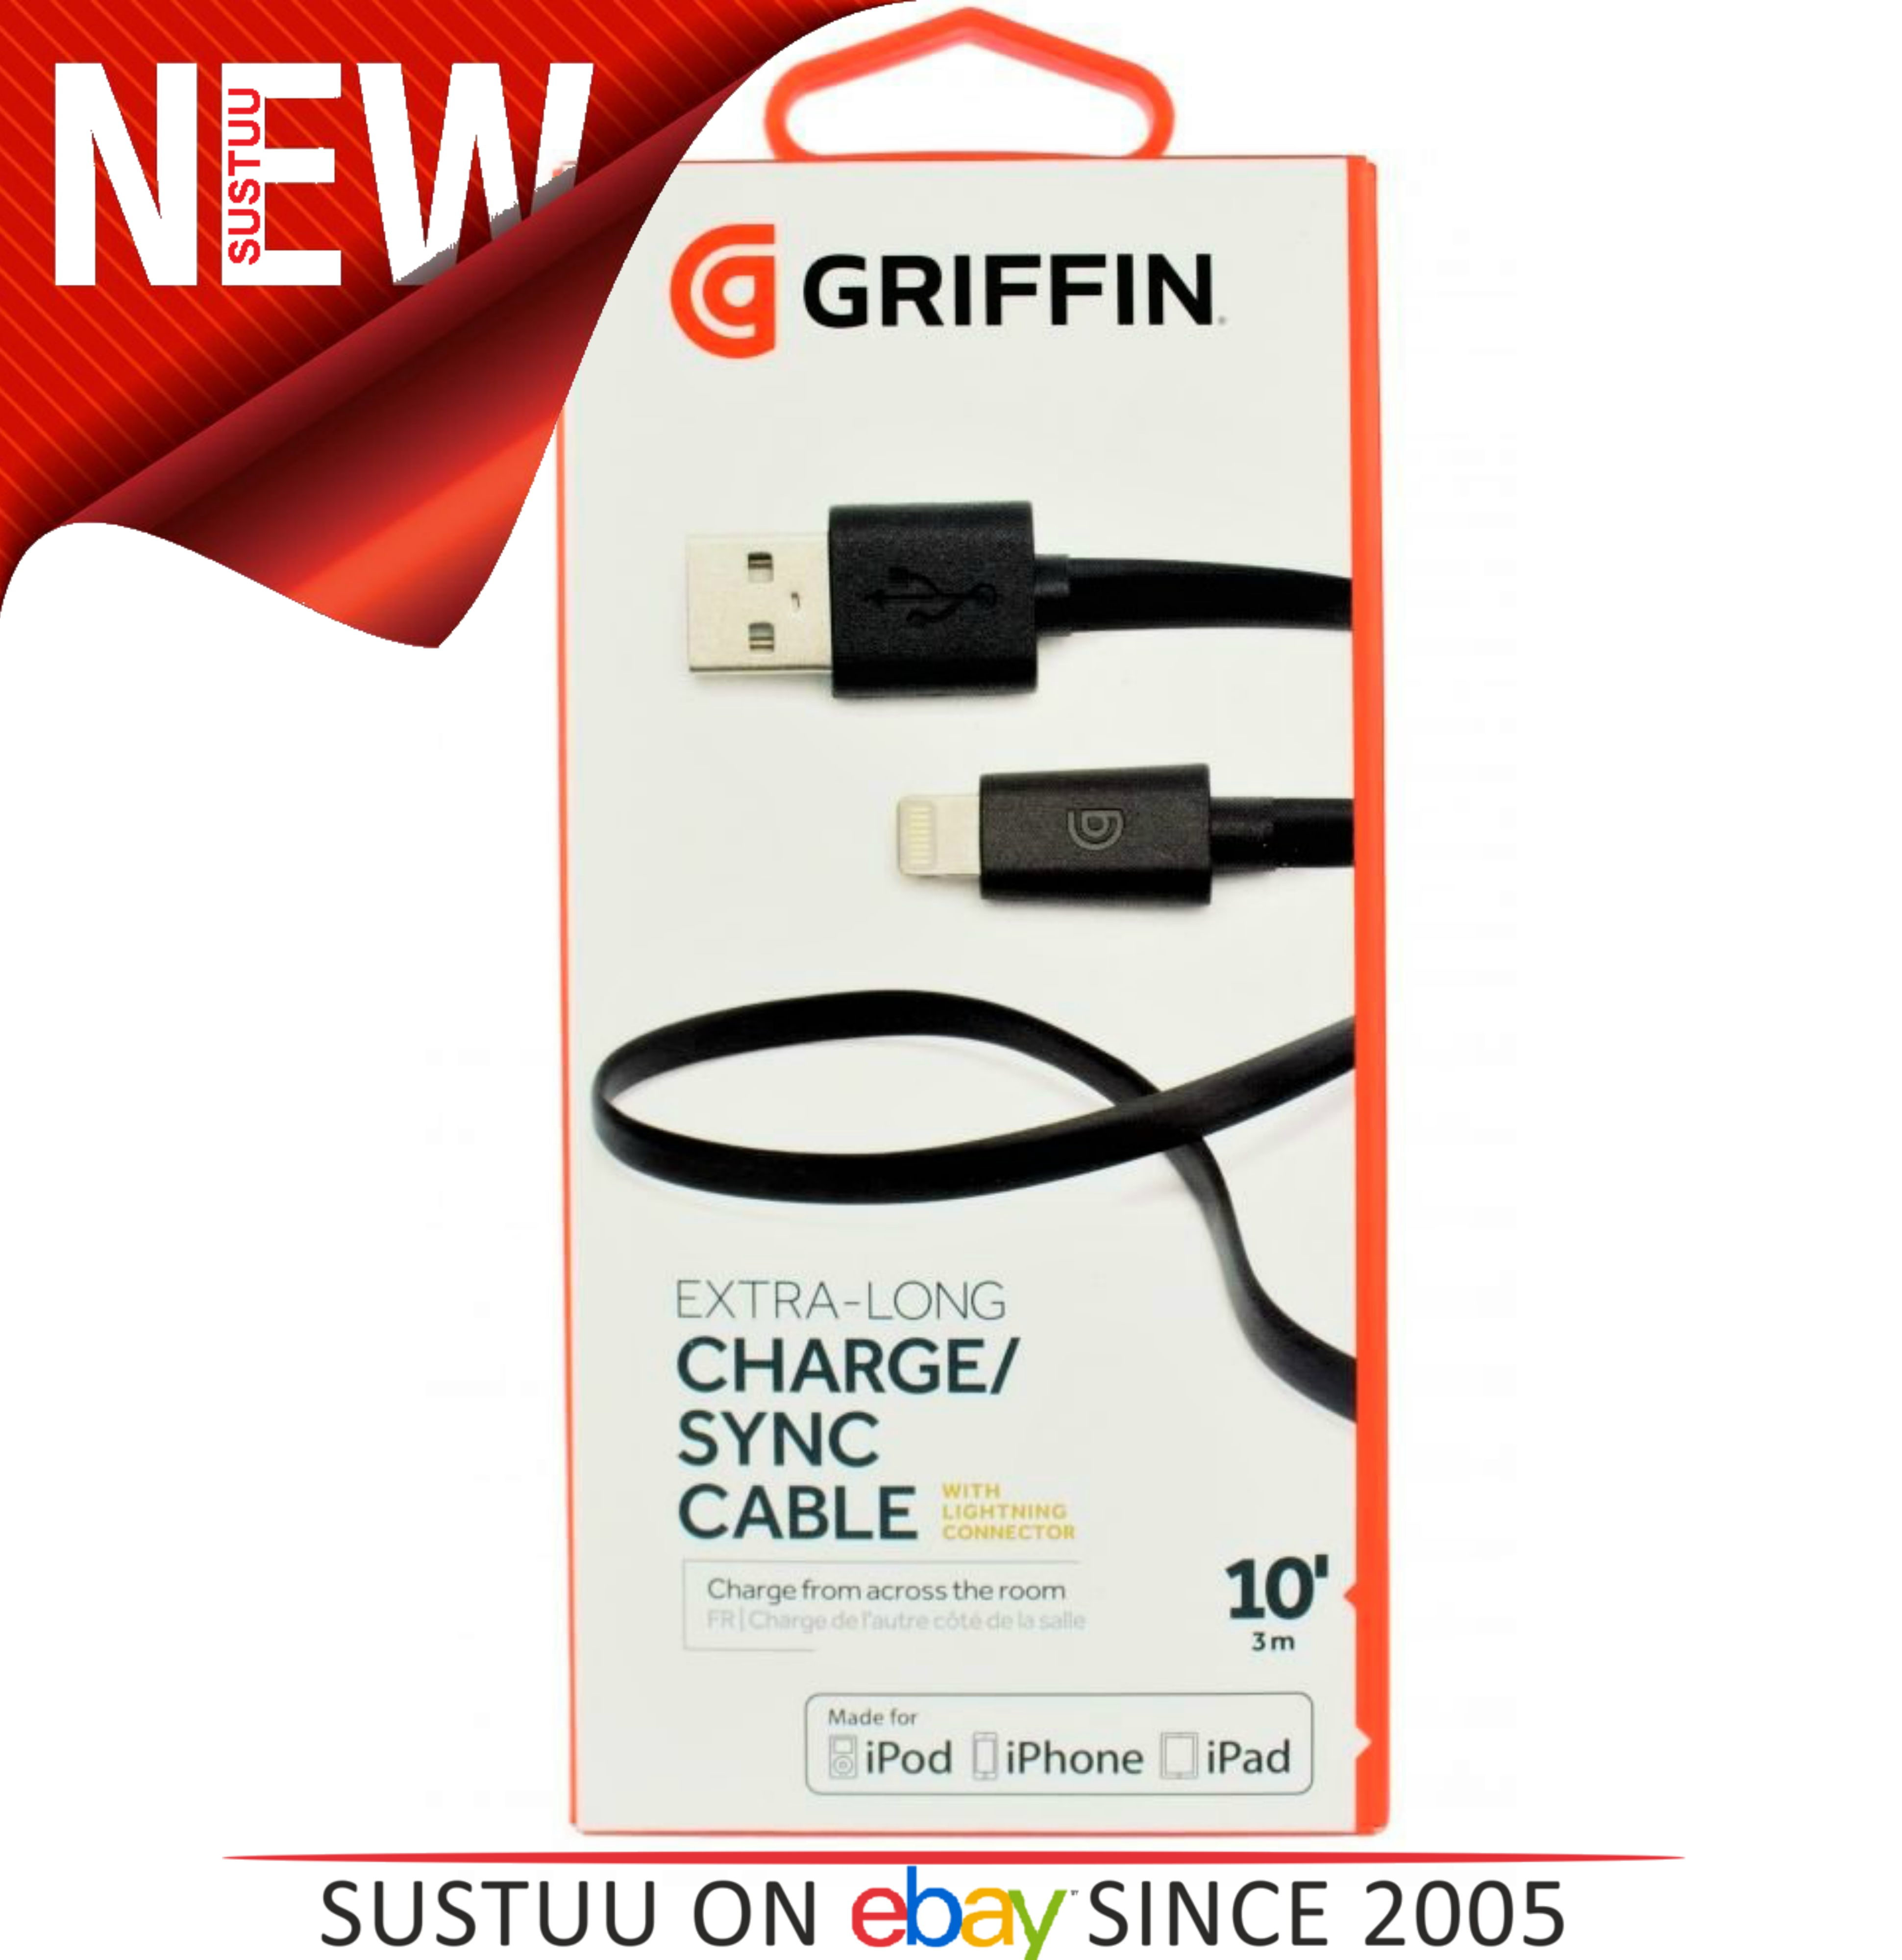 Griffin GC36633 3M 10ft Lightning Connector Charge/Sync Cable - iPhone iPod iPad